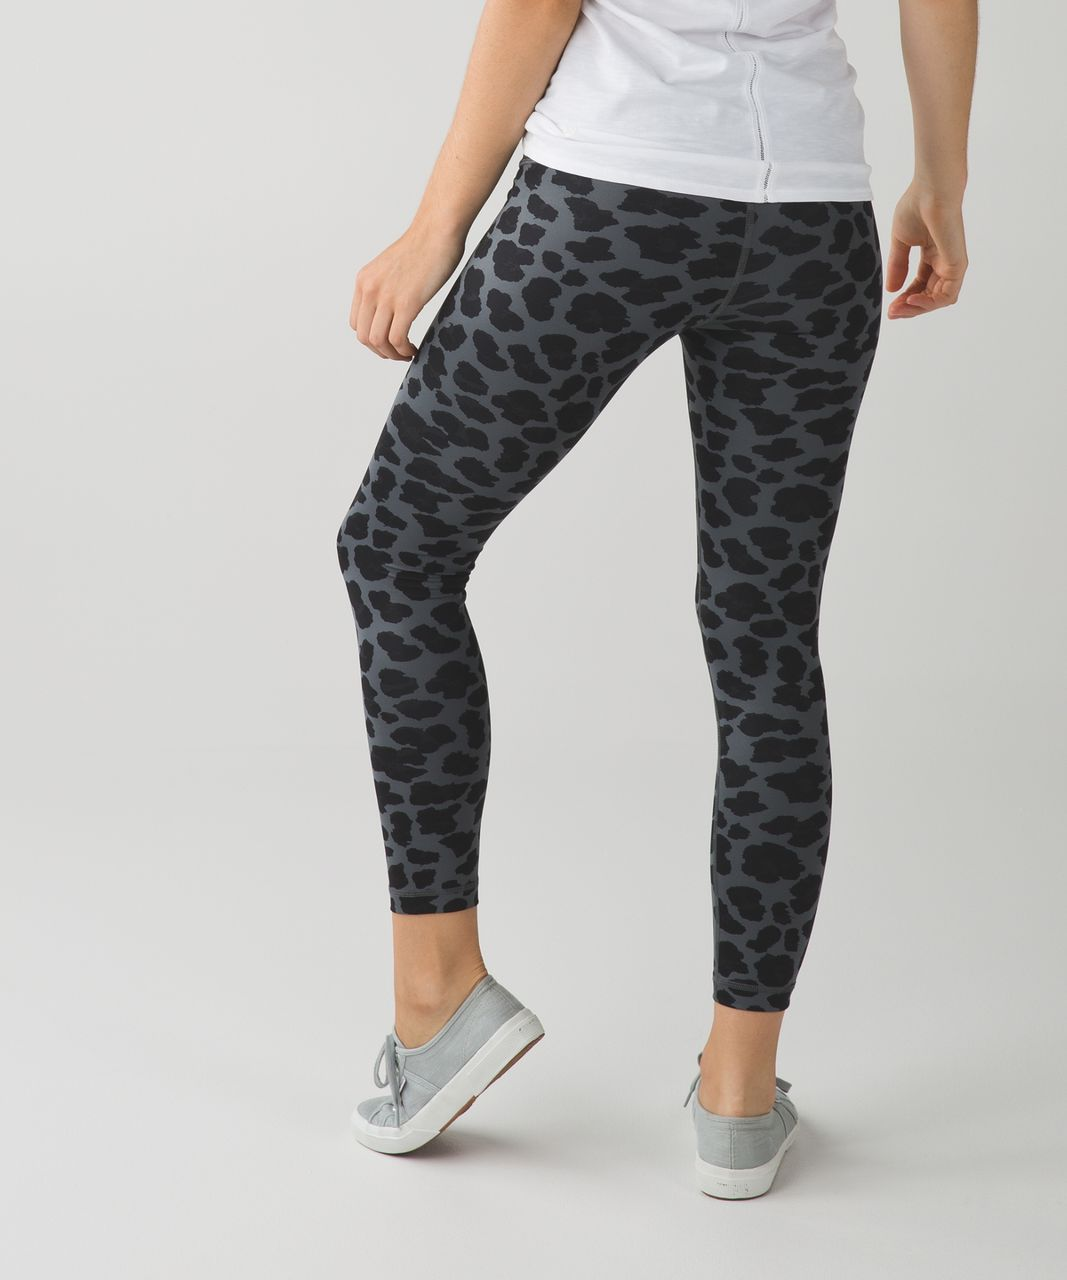 da5c0c8c72086 Materials: Full-On Luxtreme. Why we made this We designed these pants to  help us move from Hatha to happy hour, no questions asked. With a high-rise  ...